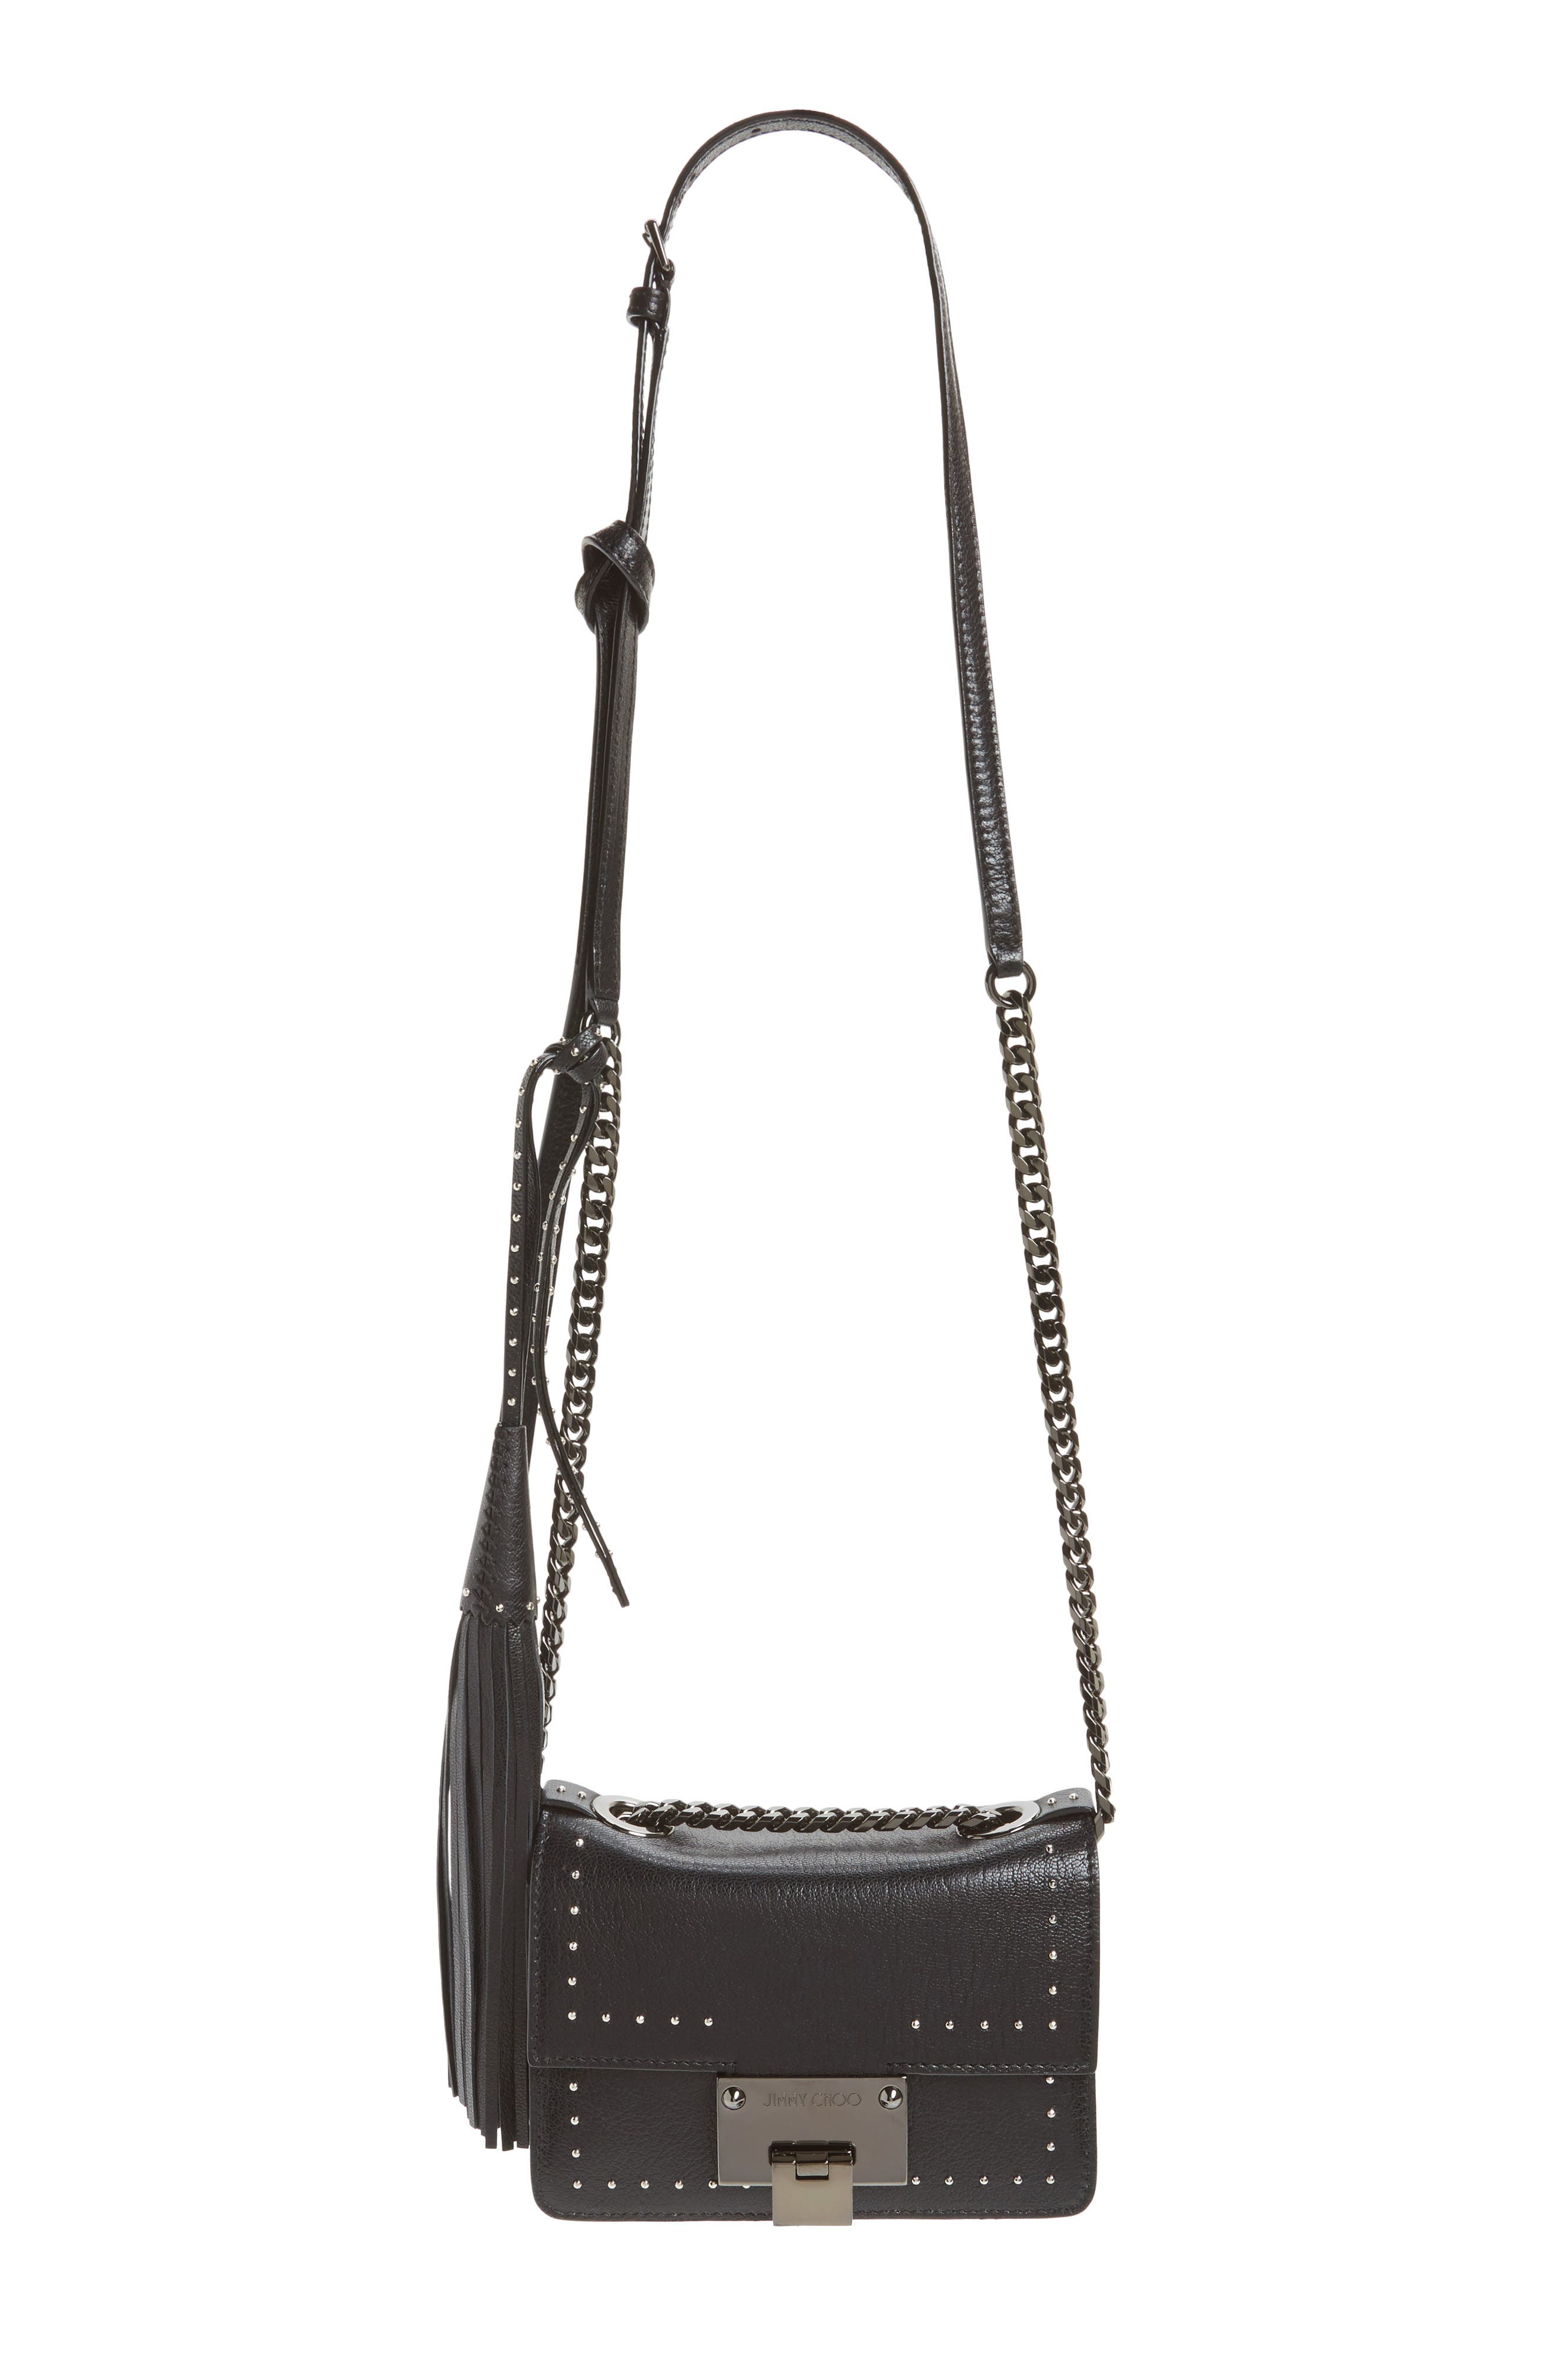 Main Image - Jimmy Choo Mini Rebel Studded Leather Shoulder Bag